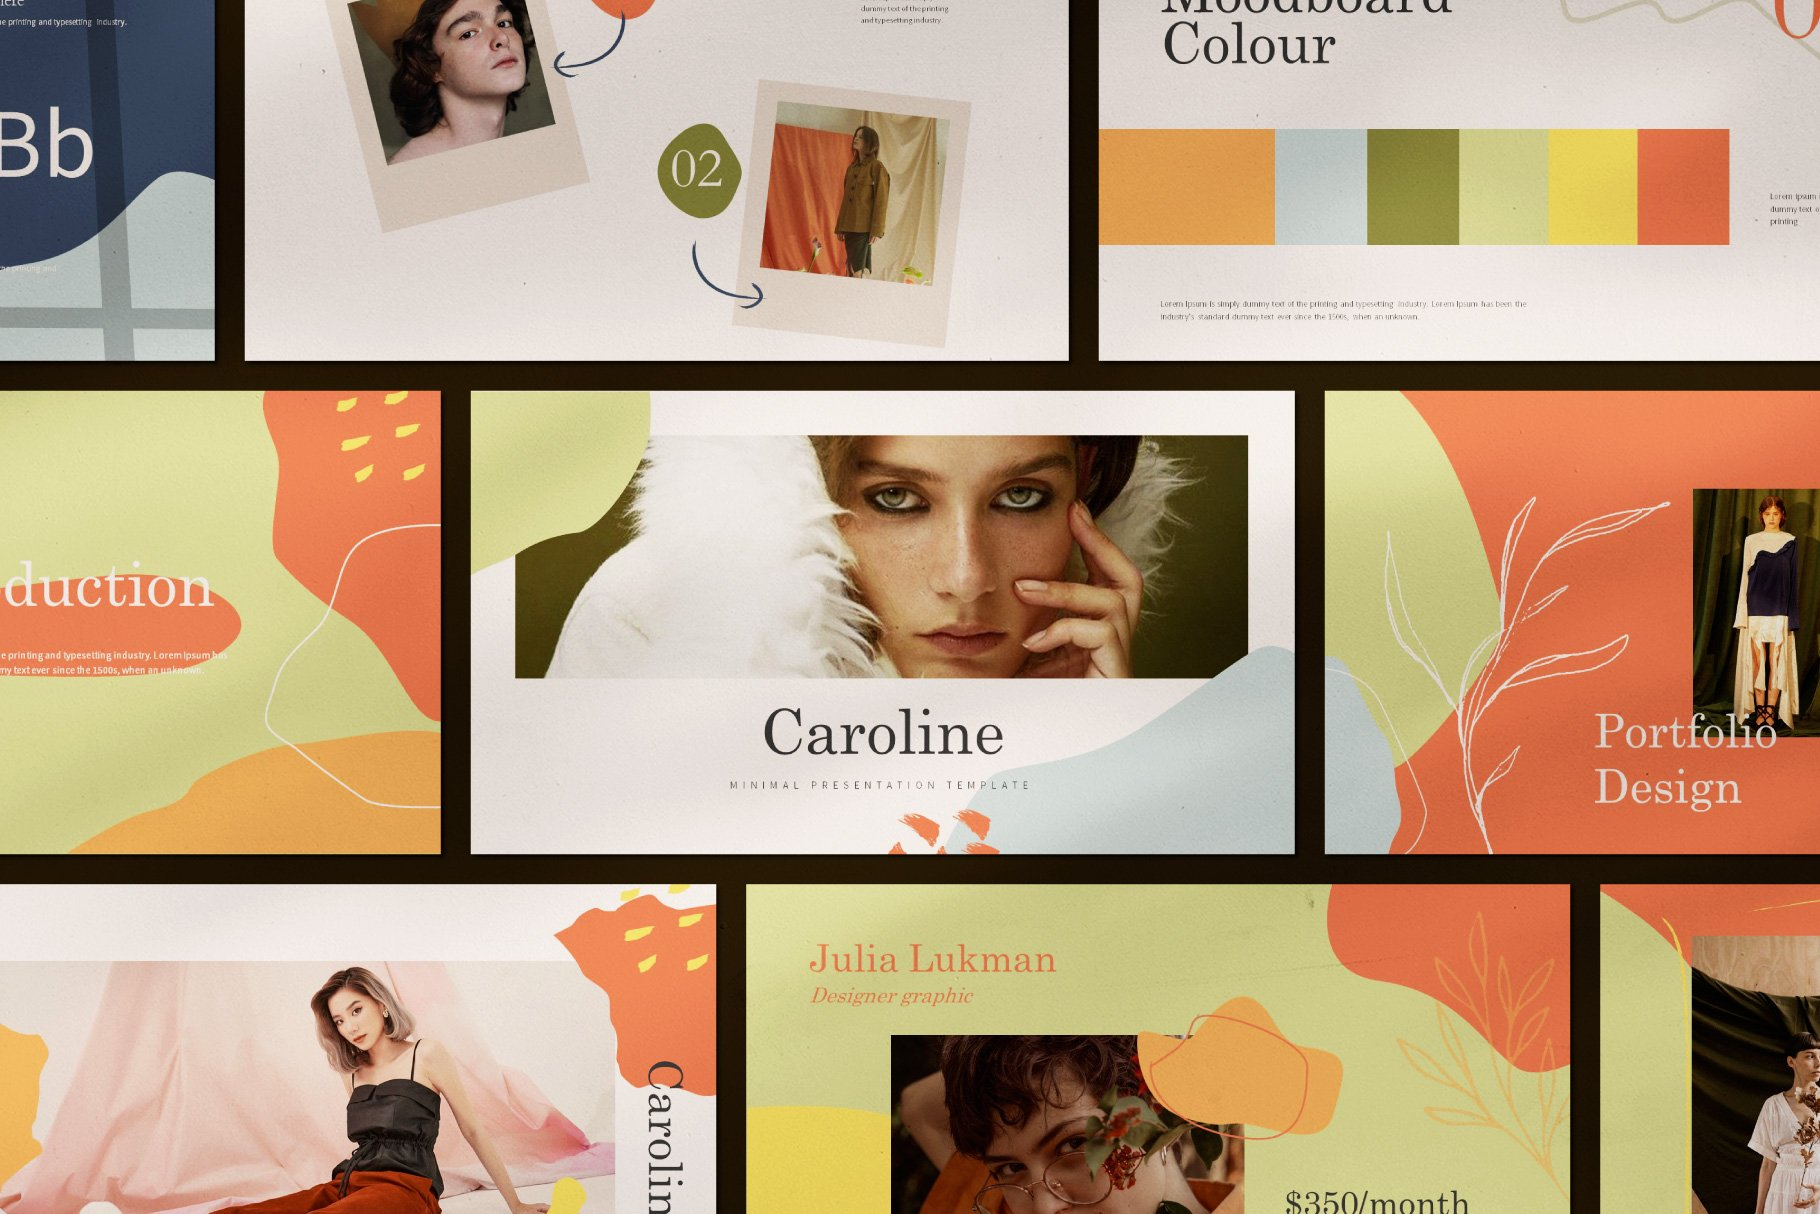 Design is flexible and you can customize template in a simple way.